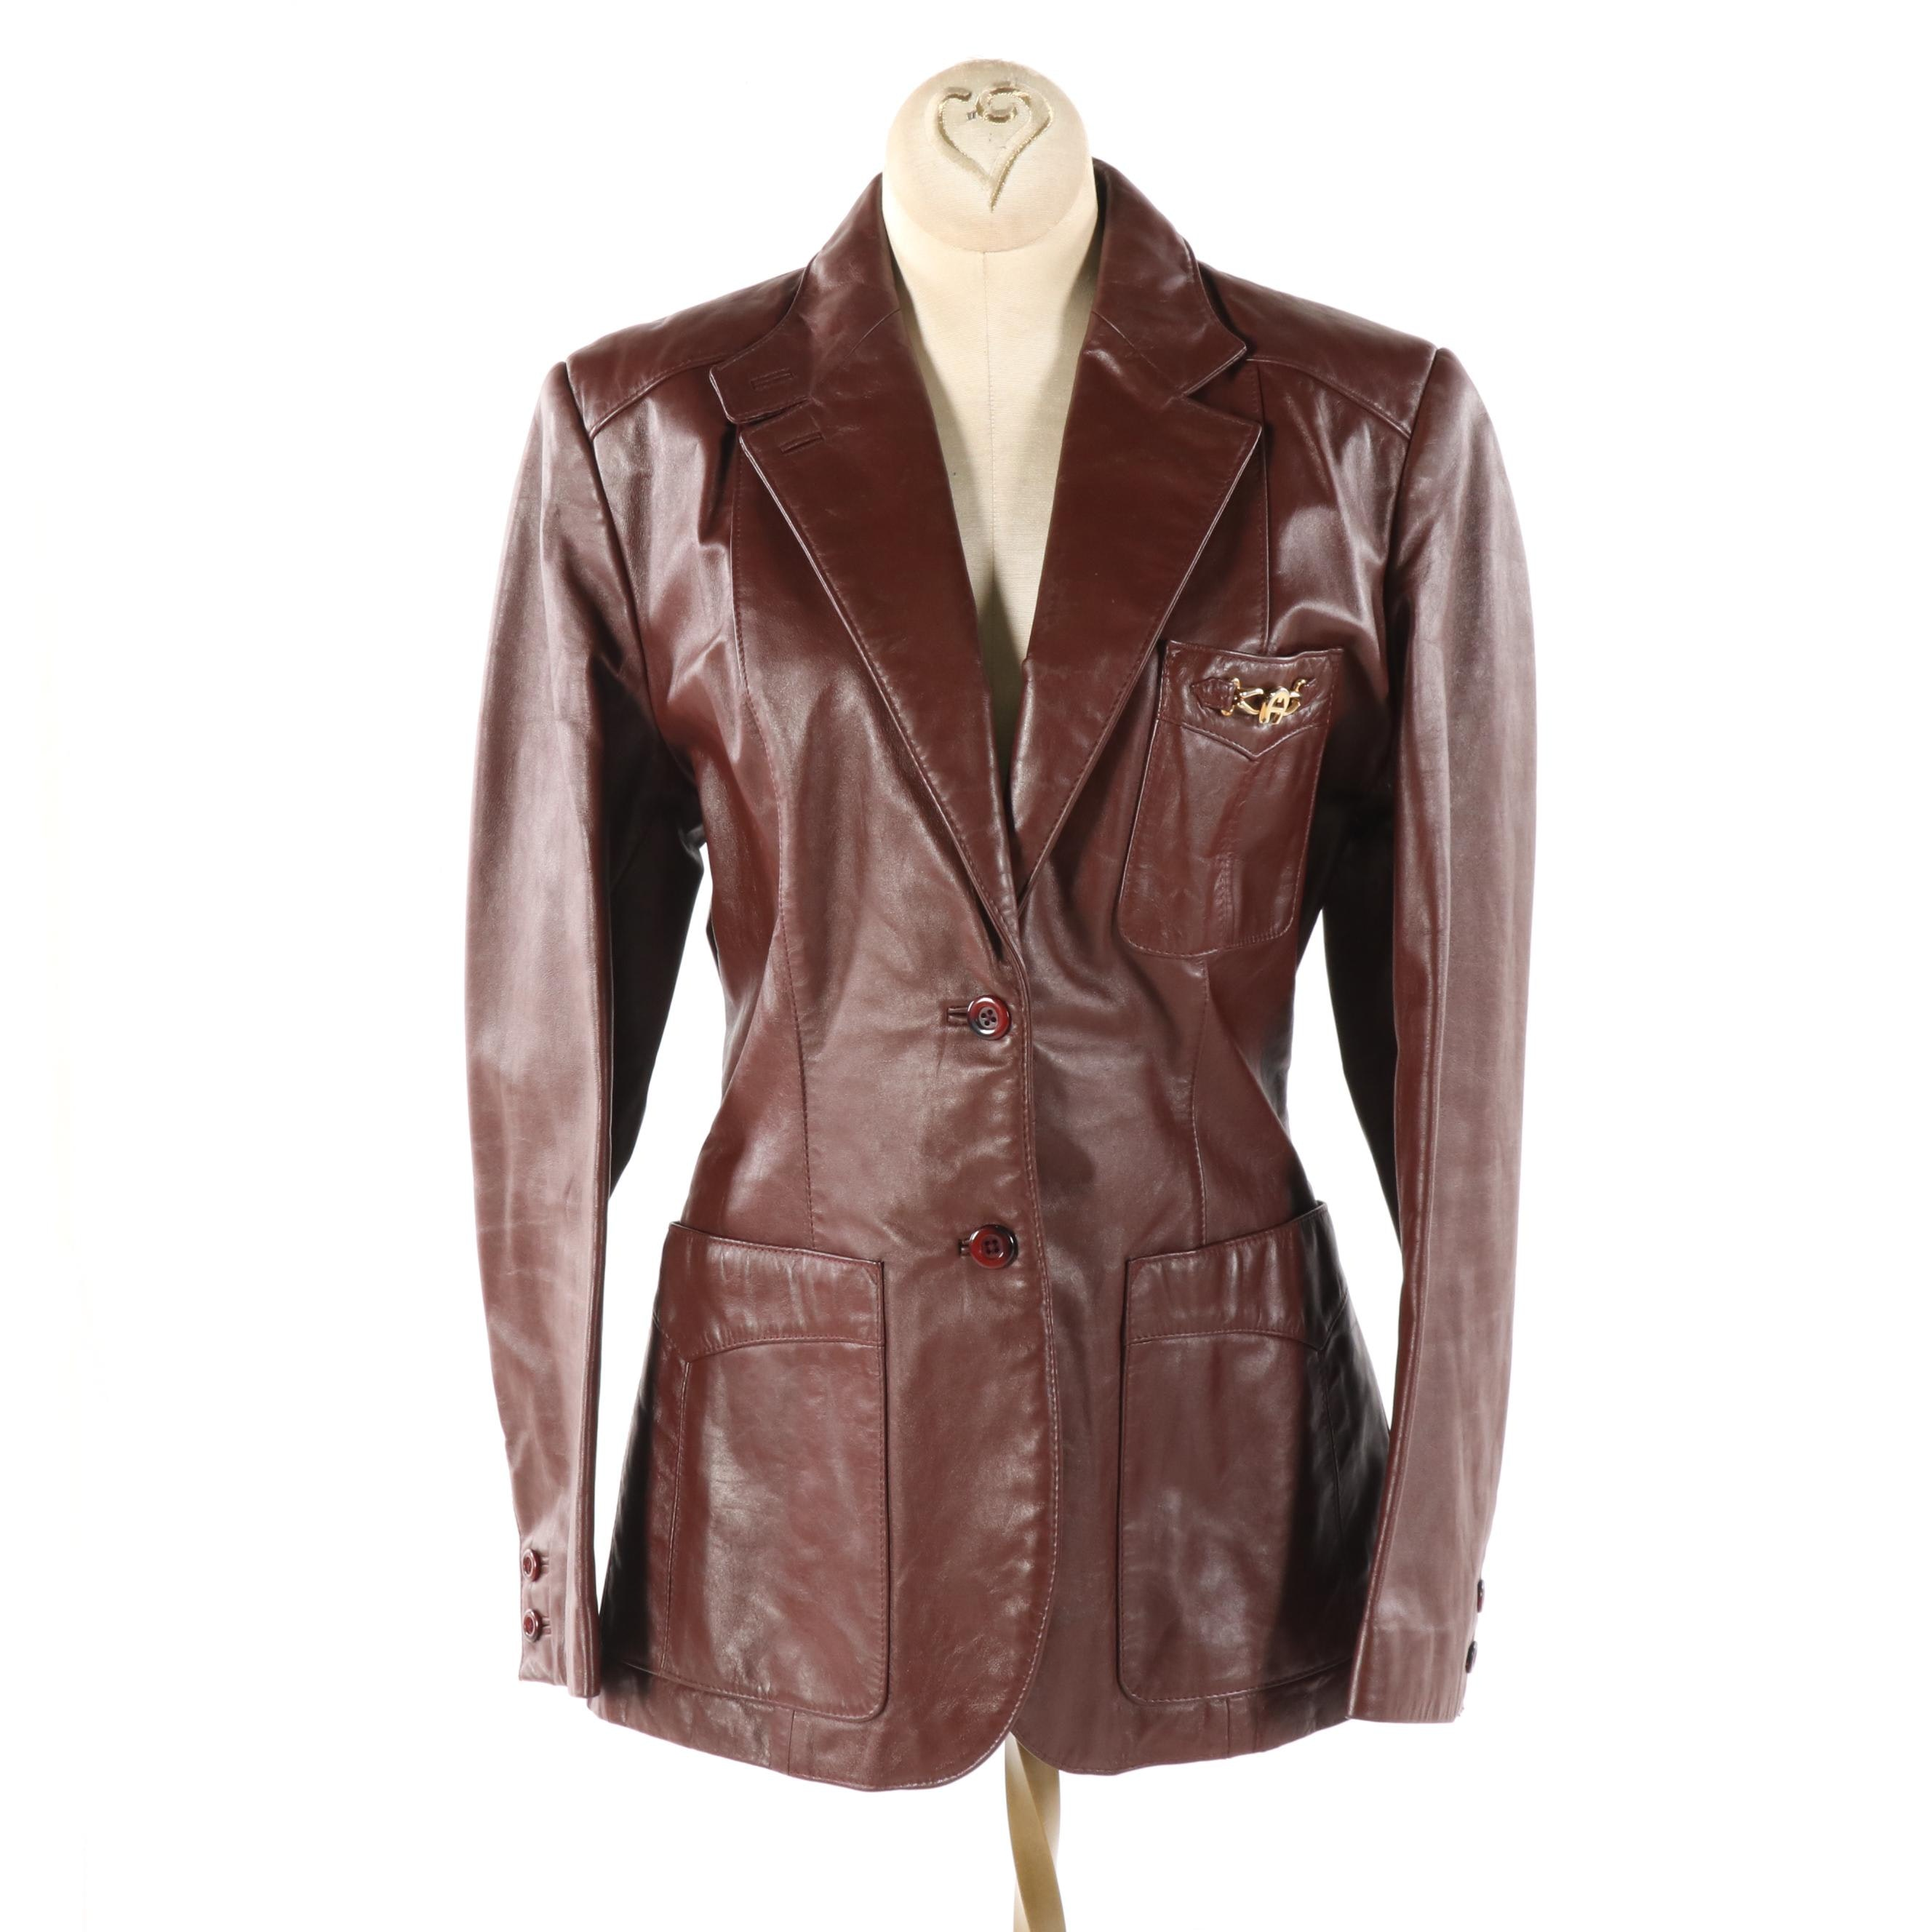 Women's Etienne Aigner Brown Leather Jacket